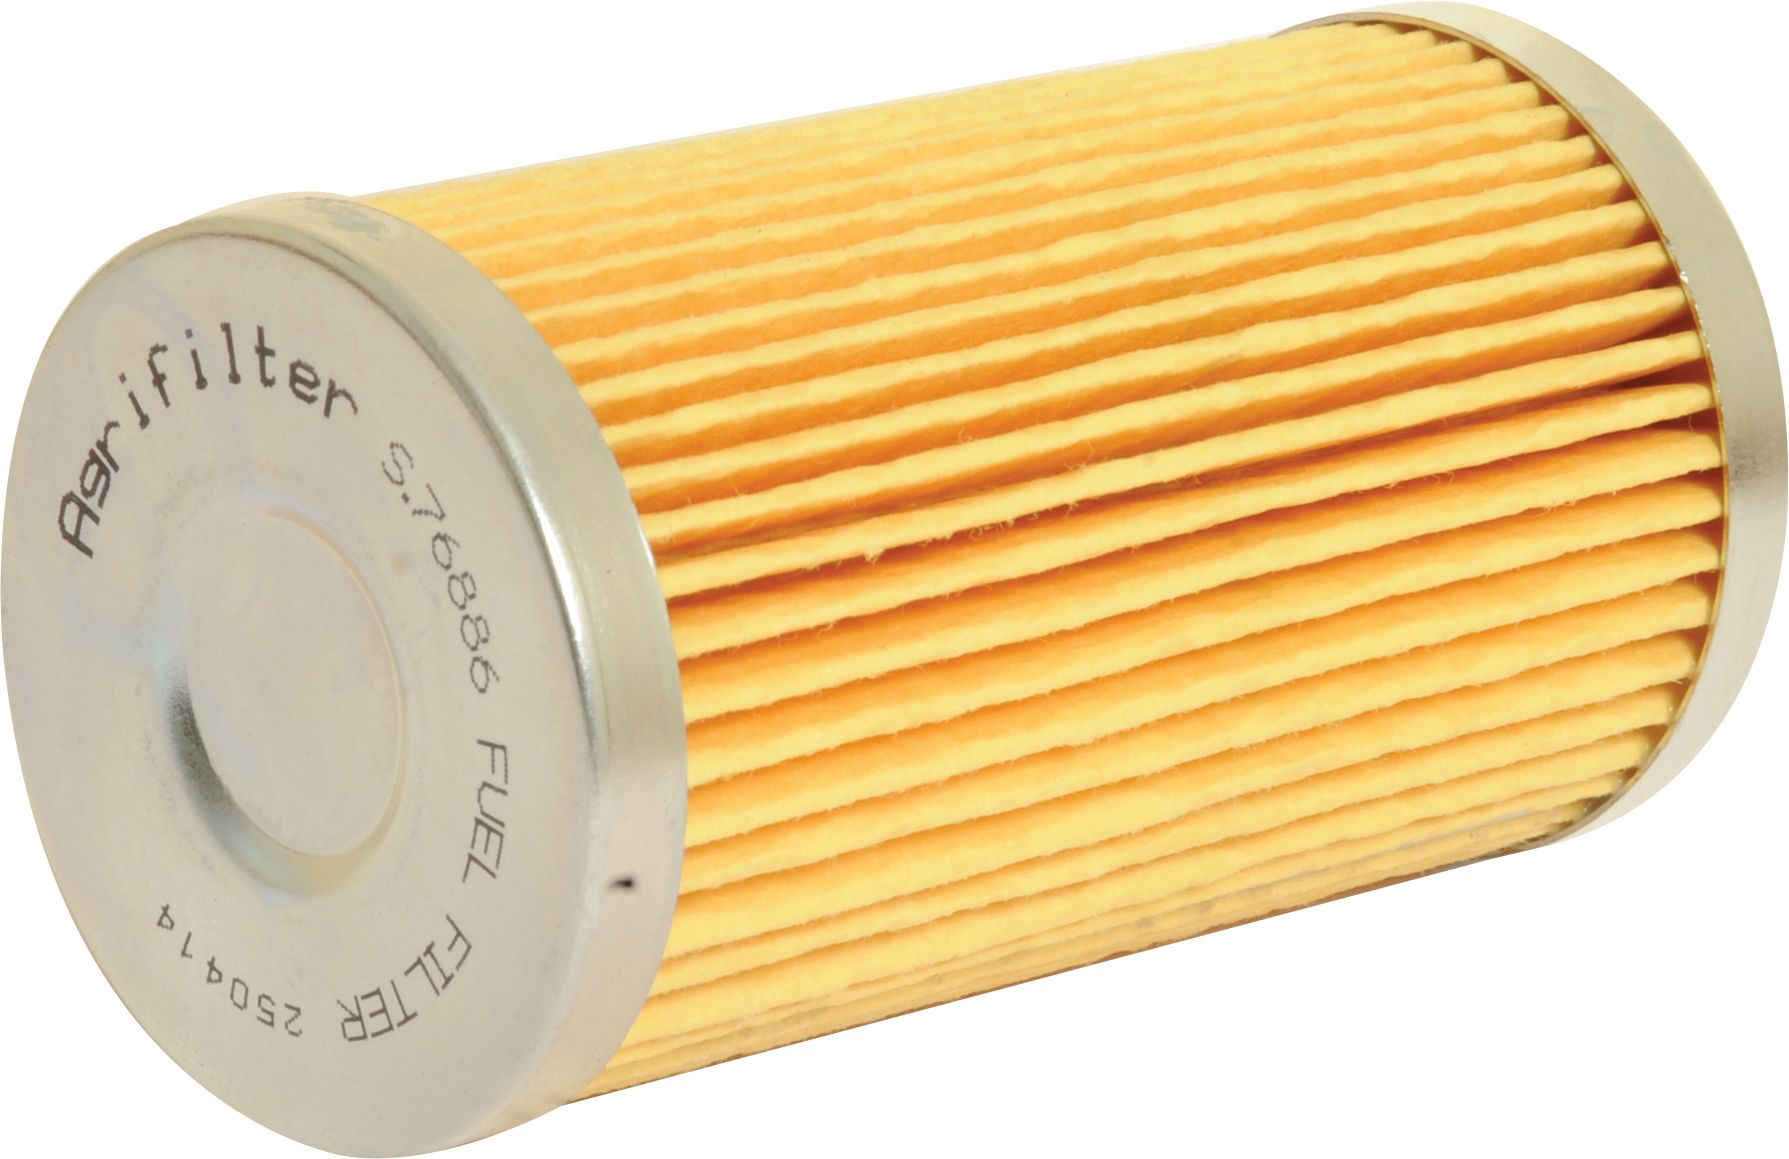 RANSOME FUEL FILTER